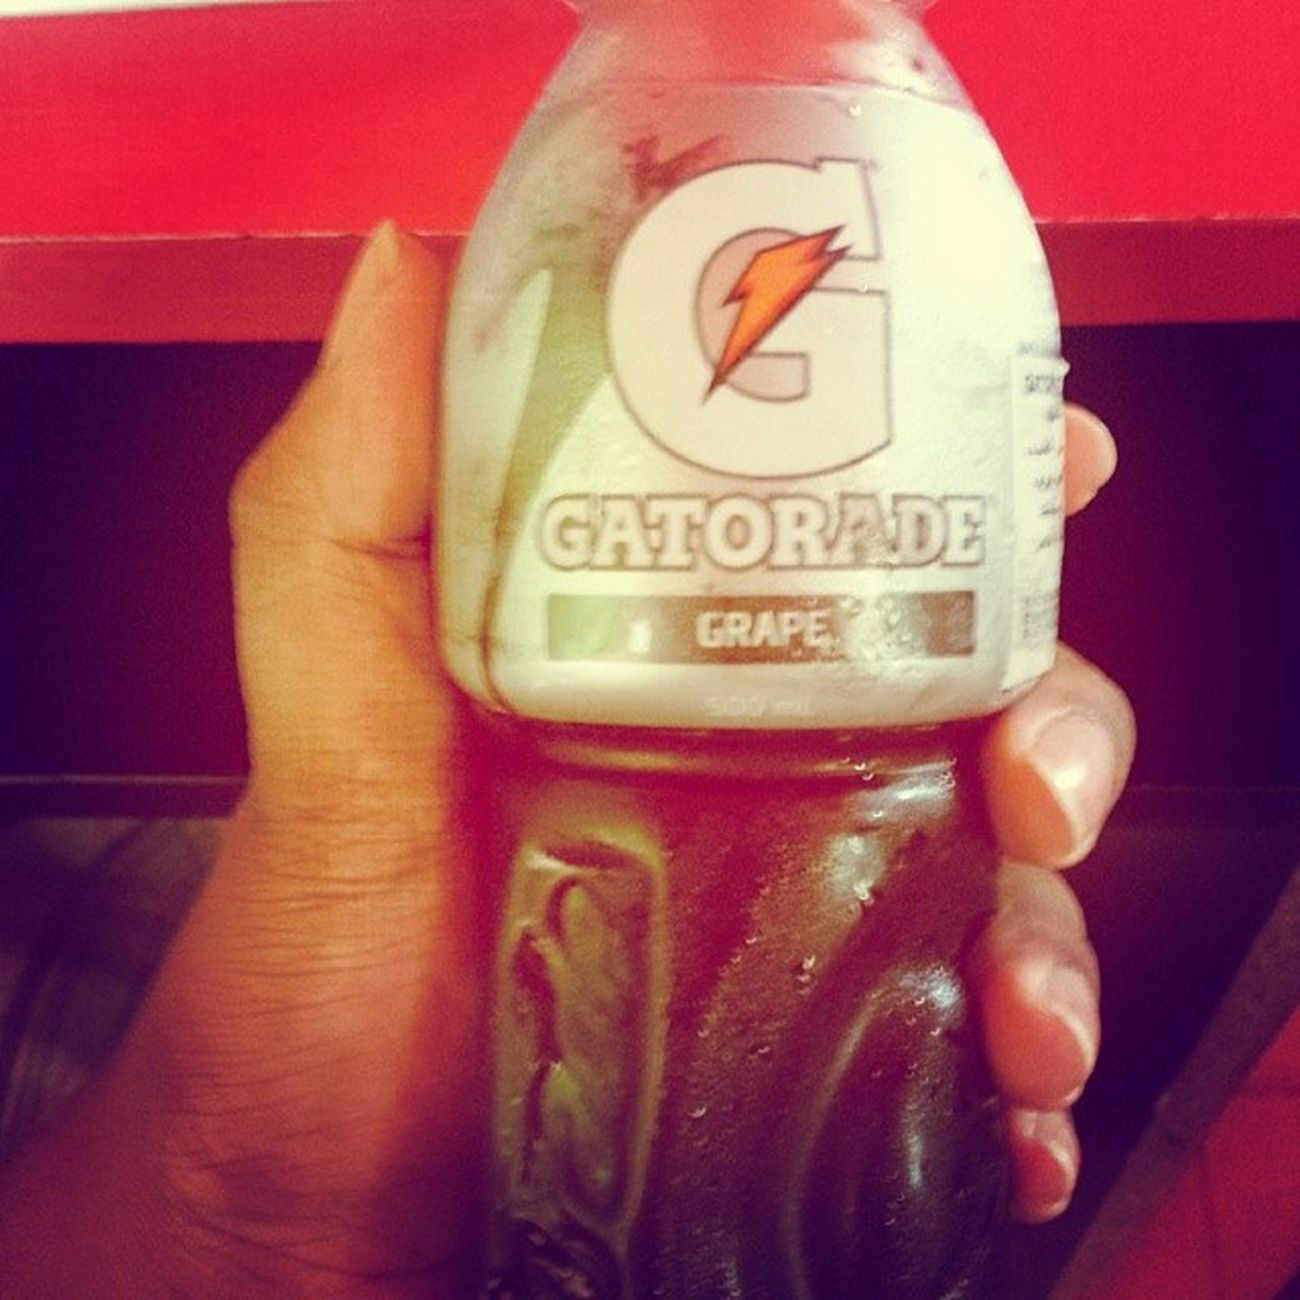 Heatkiller Gatorade Grape Exhausted hot saviour instapic instadaily stoptthisheatGod